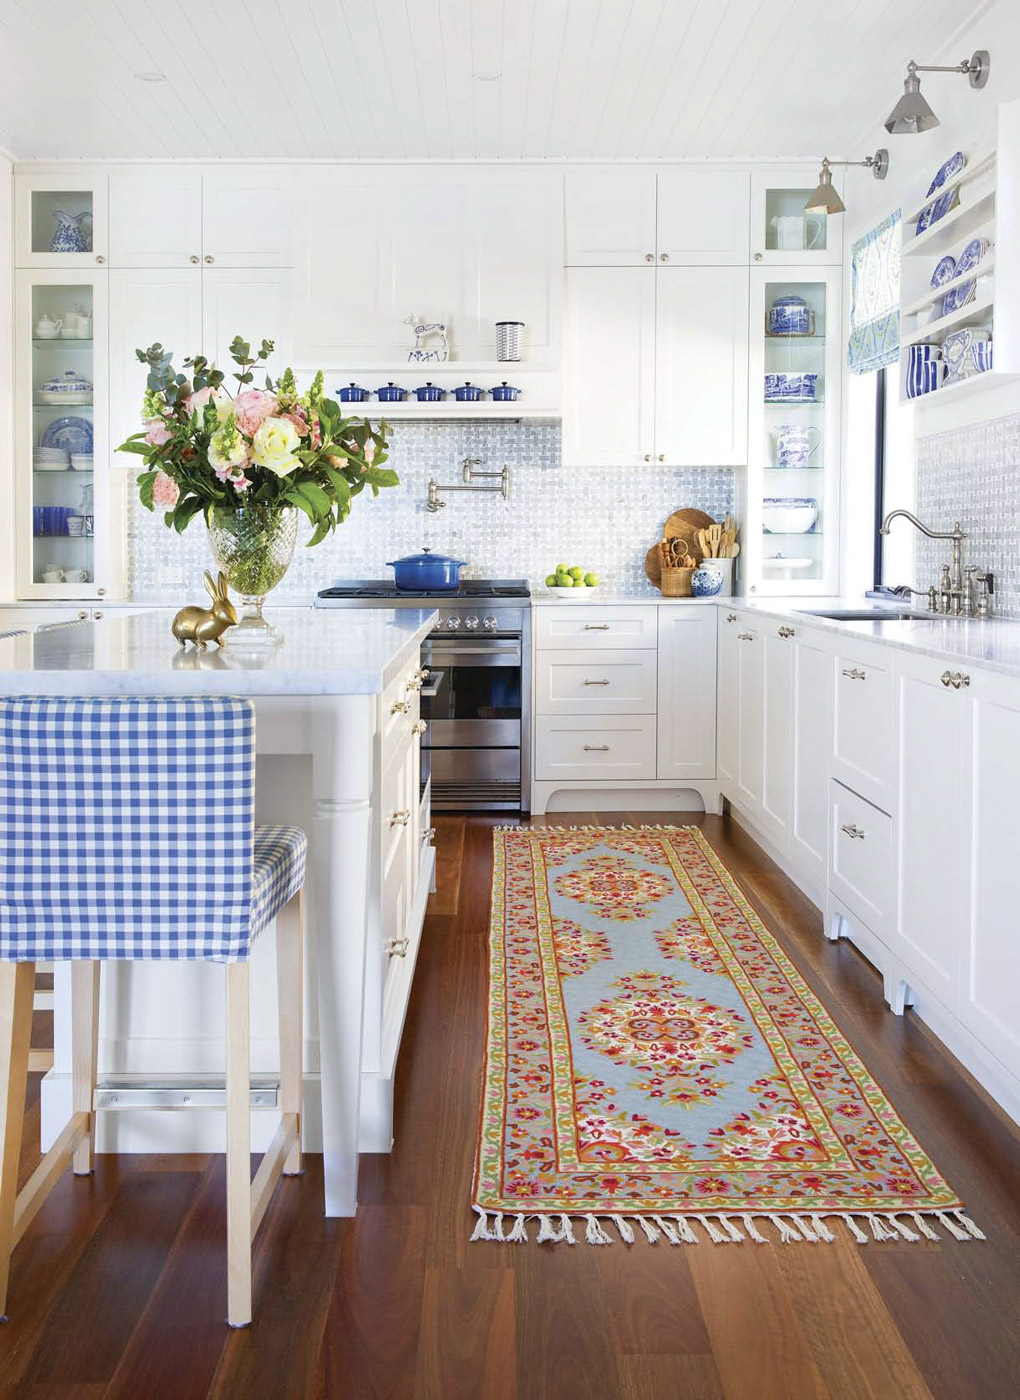 All white kitchen with cobalt blue accents and items in shelving, blue upholstered gingham bar stool and colorful floor runner.